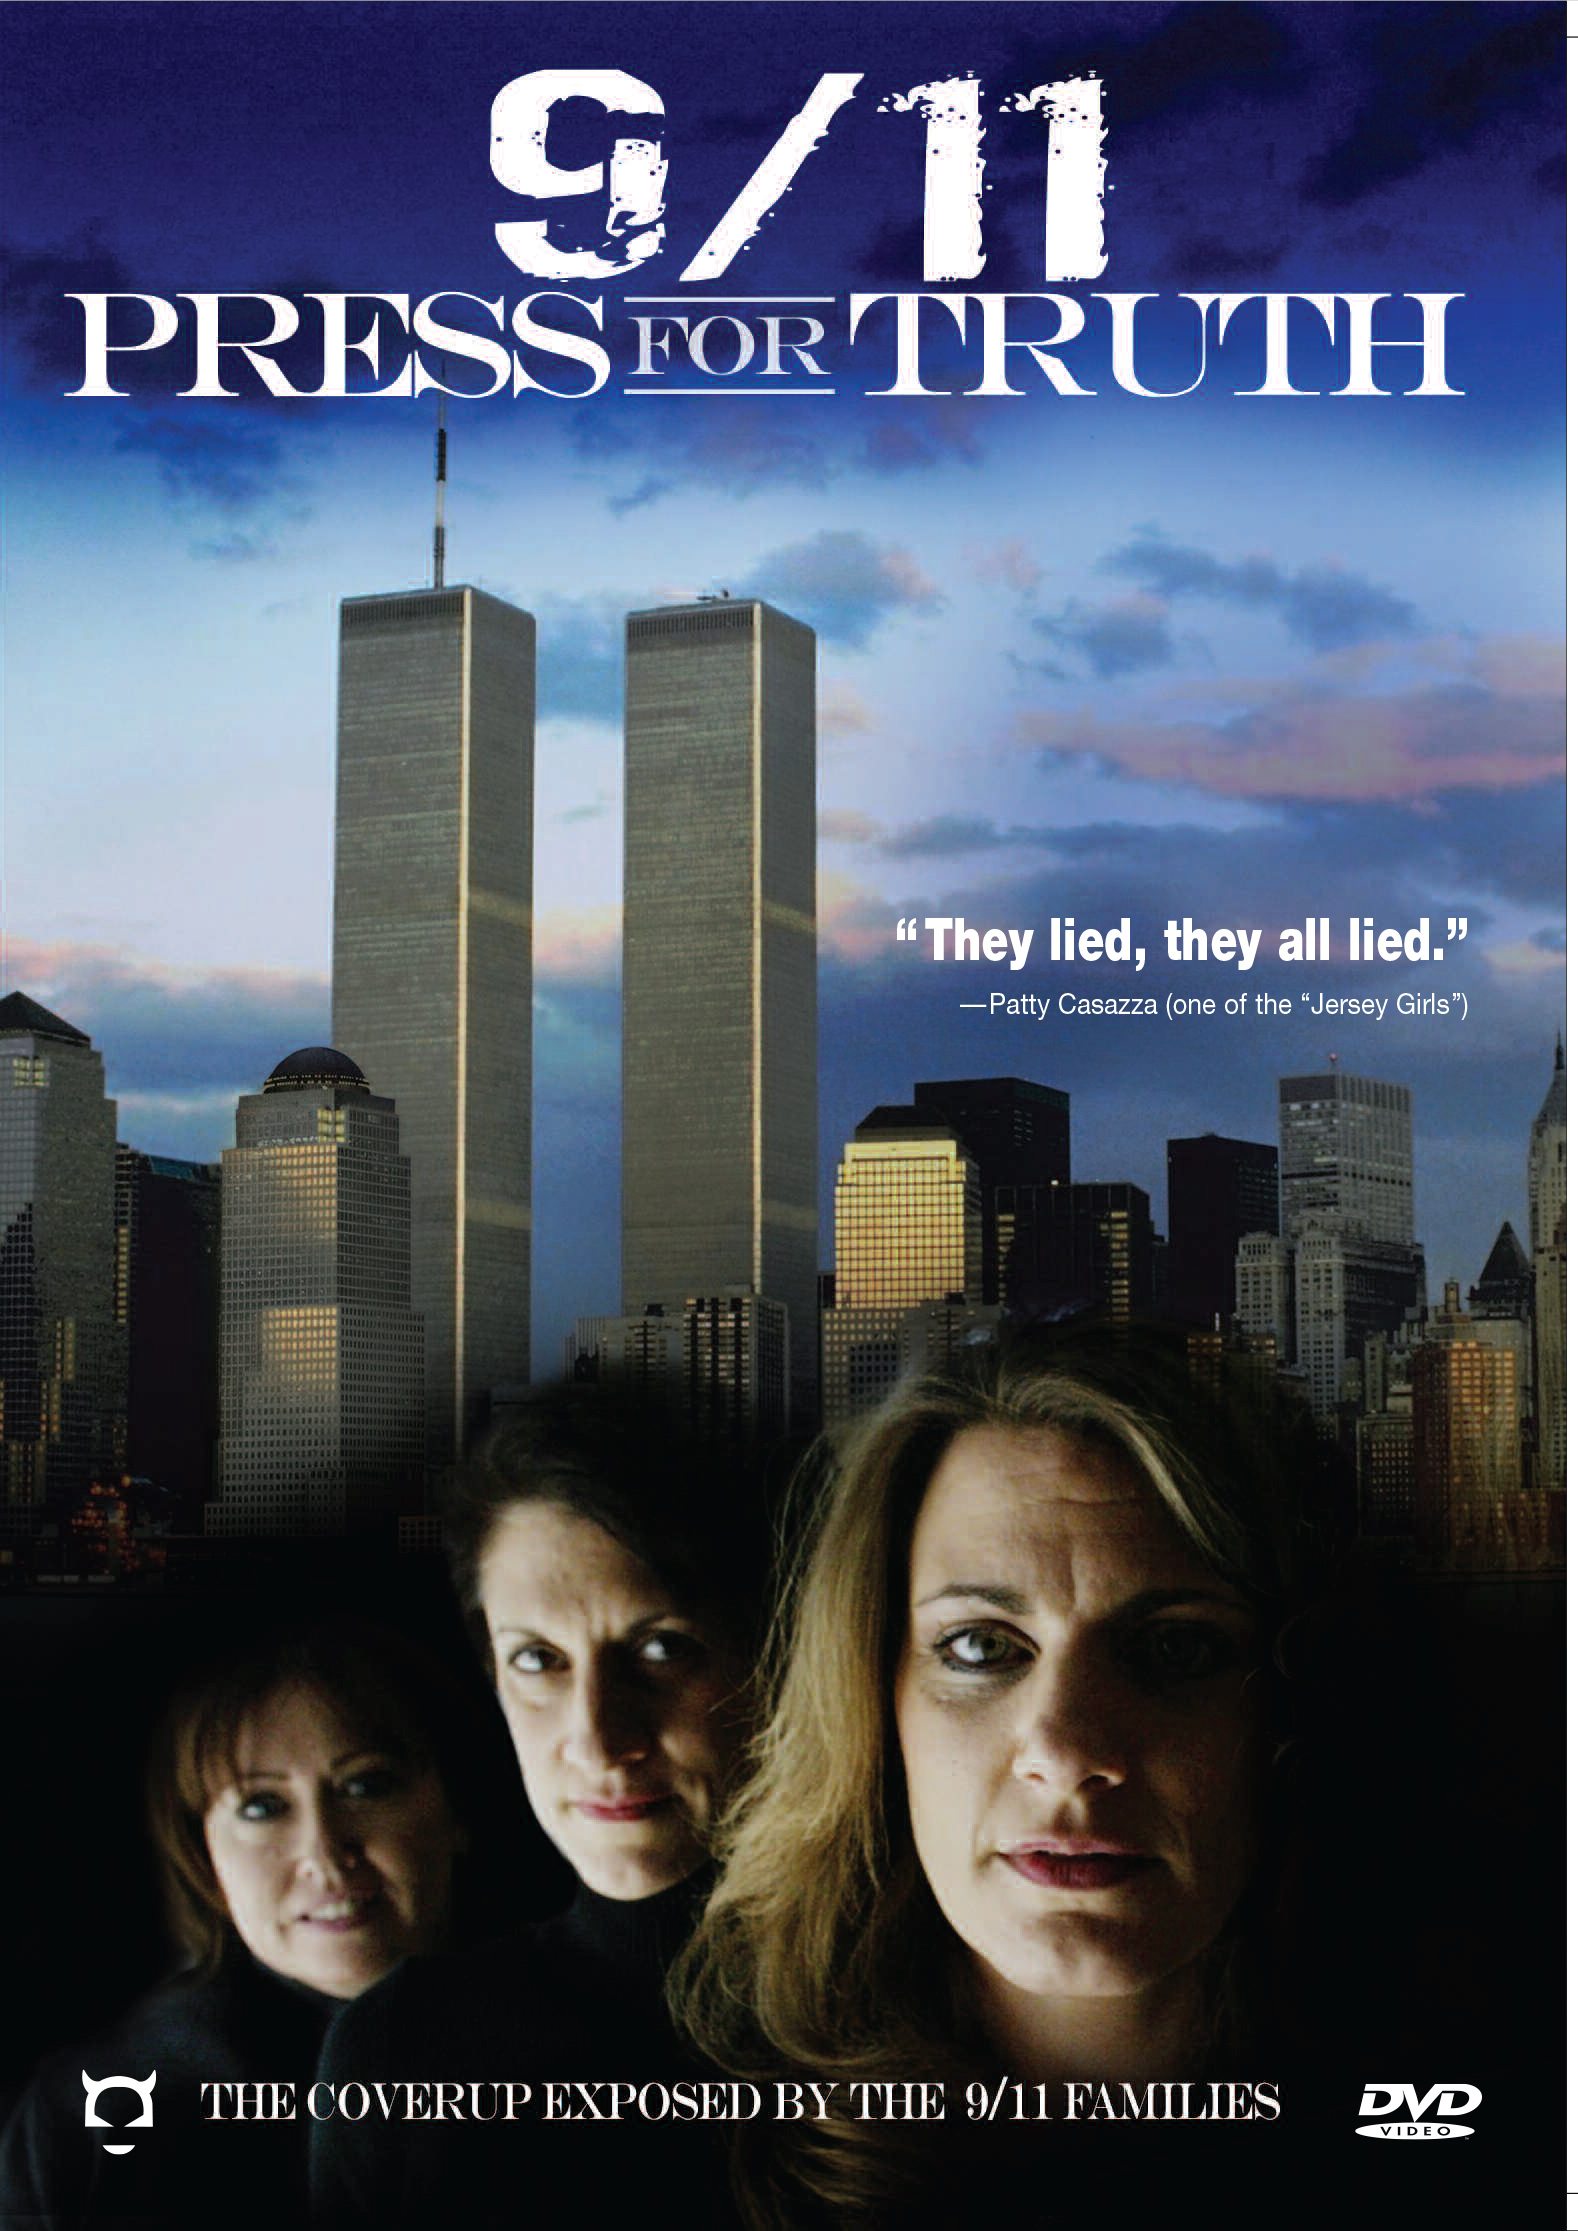 the truth behind 9 11 9/11 conspiracy theories people actually think are true  that some of those  people believe represent the truth about what happened on that.